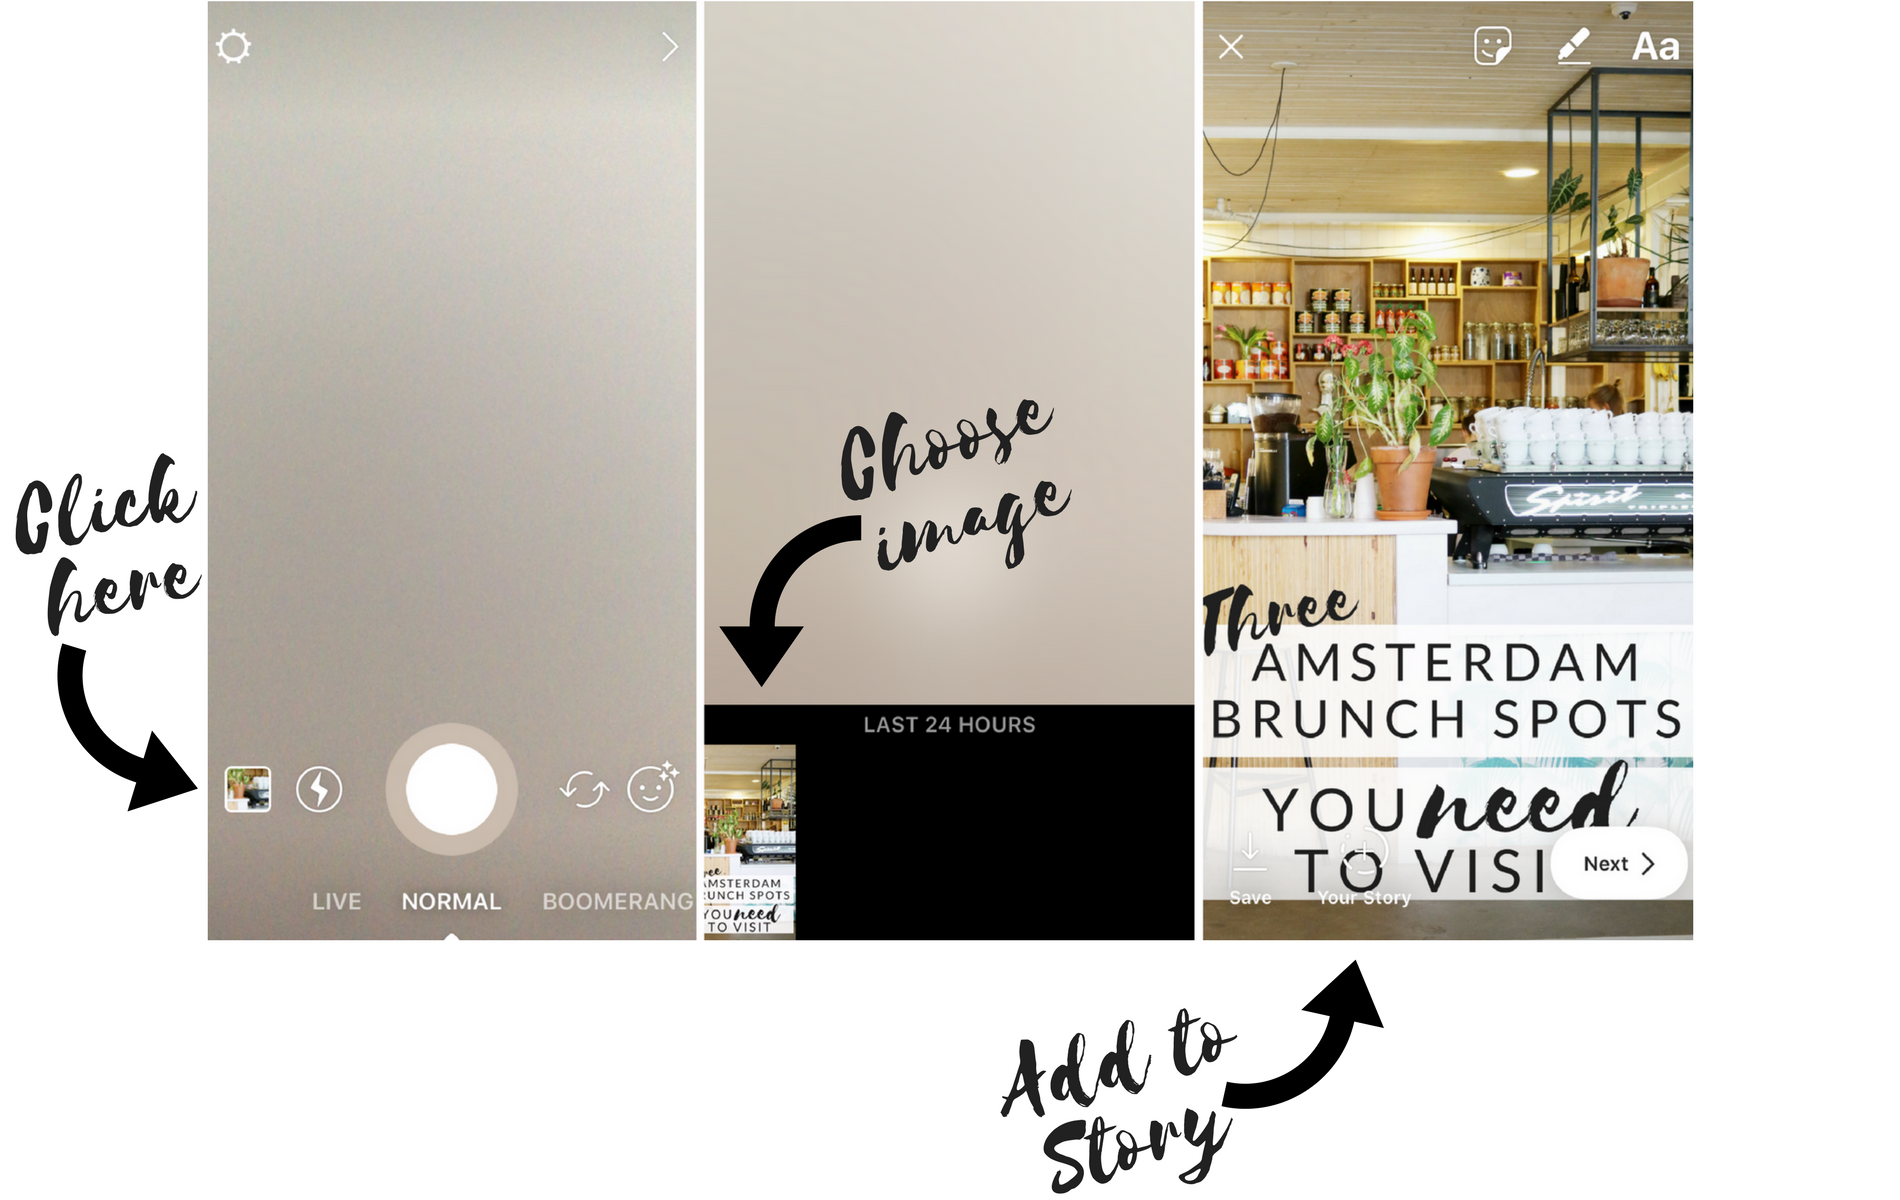 how to add customised images to Instagram story